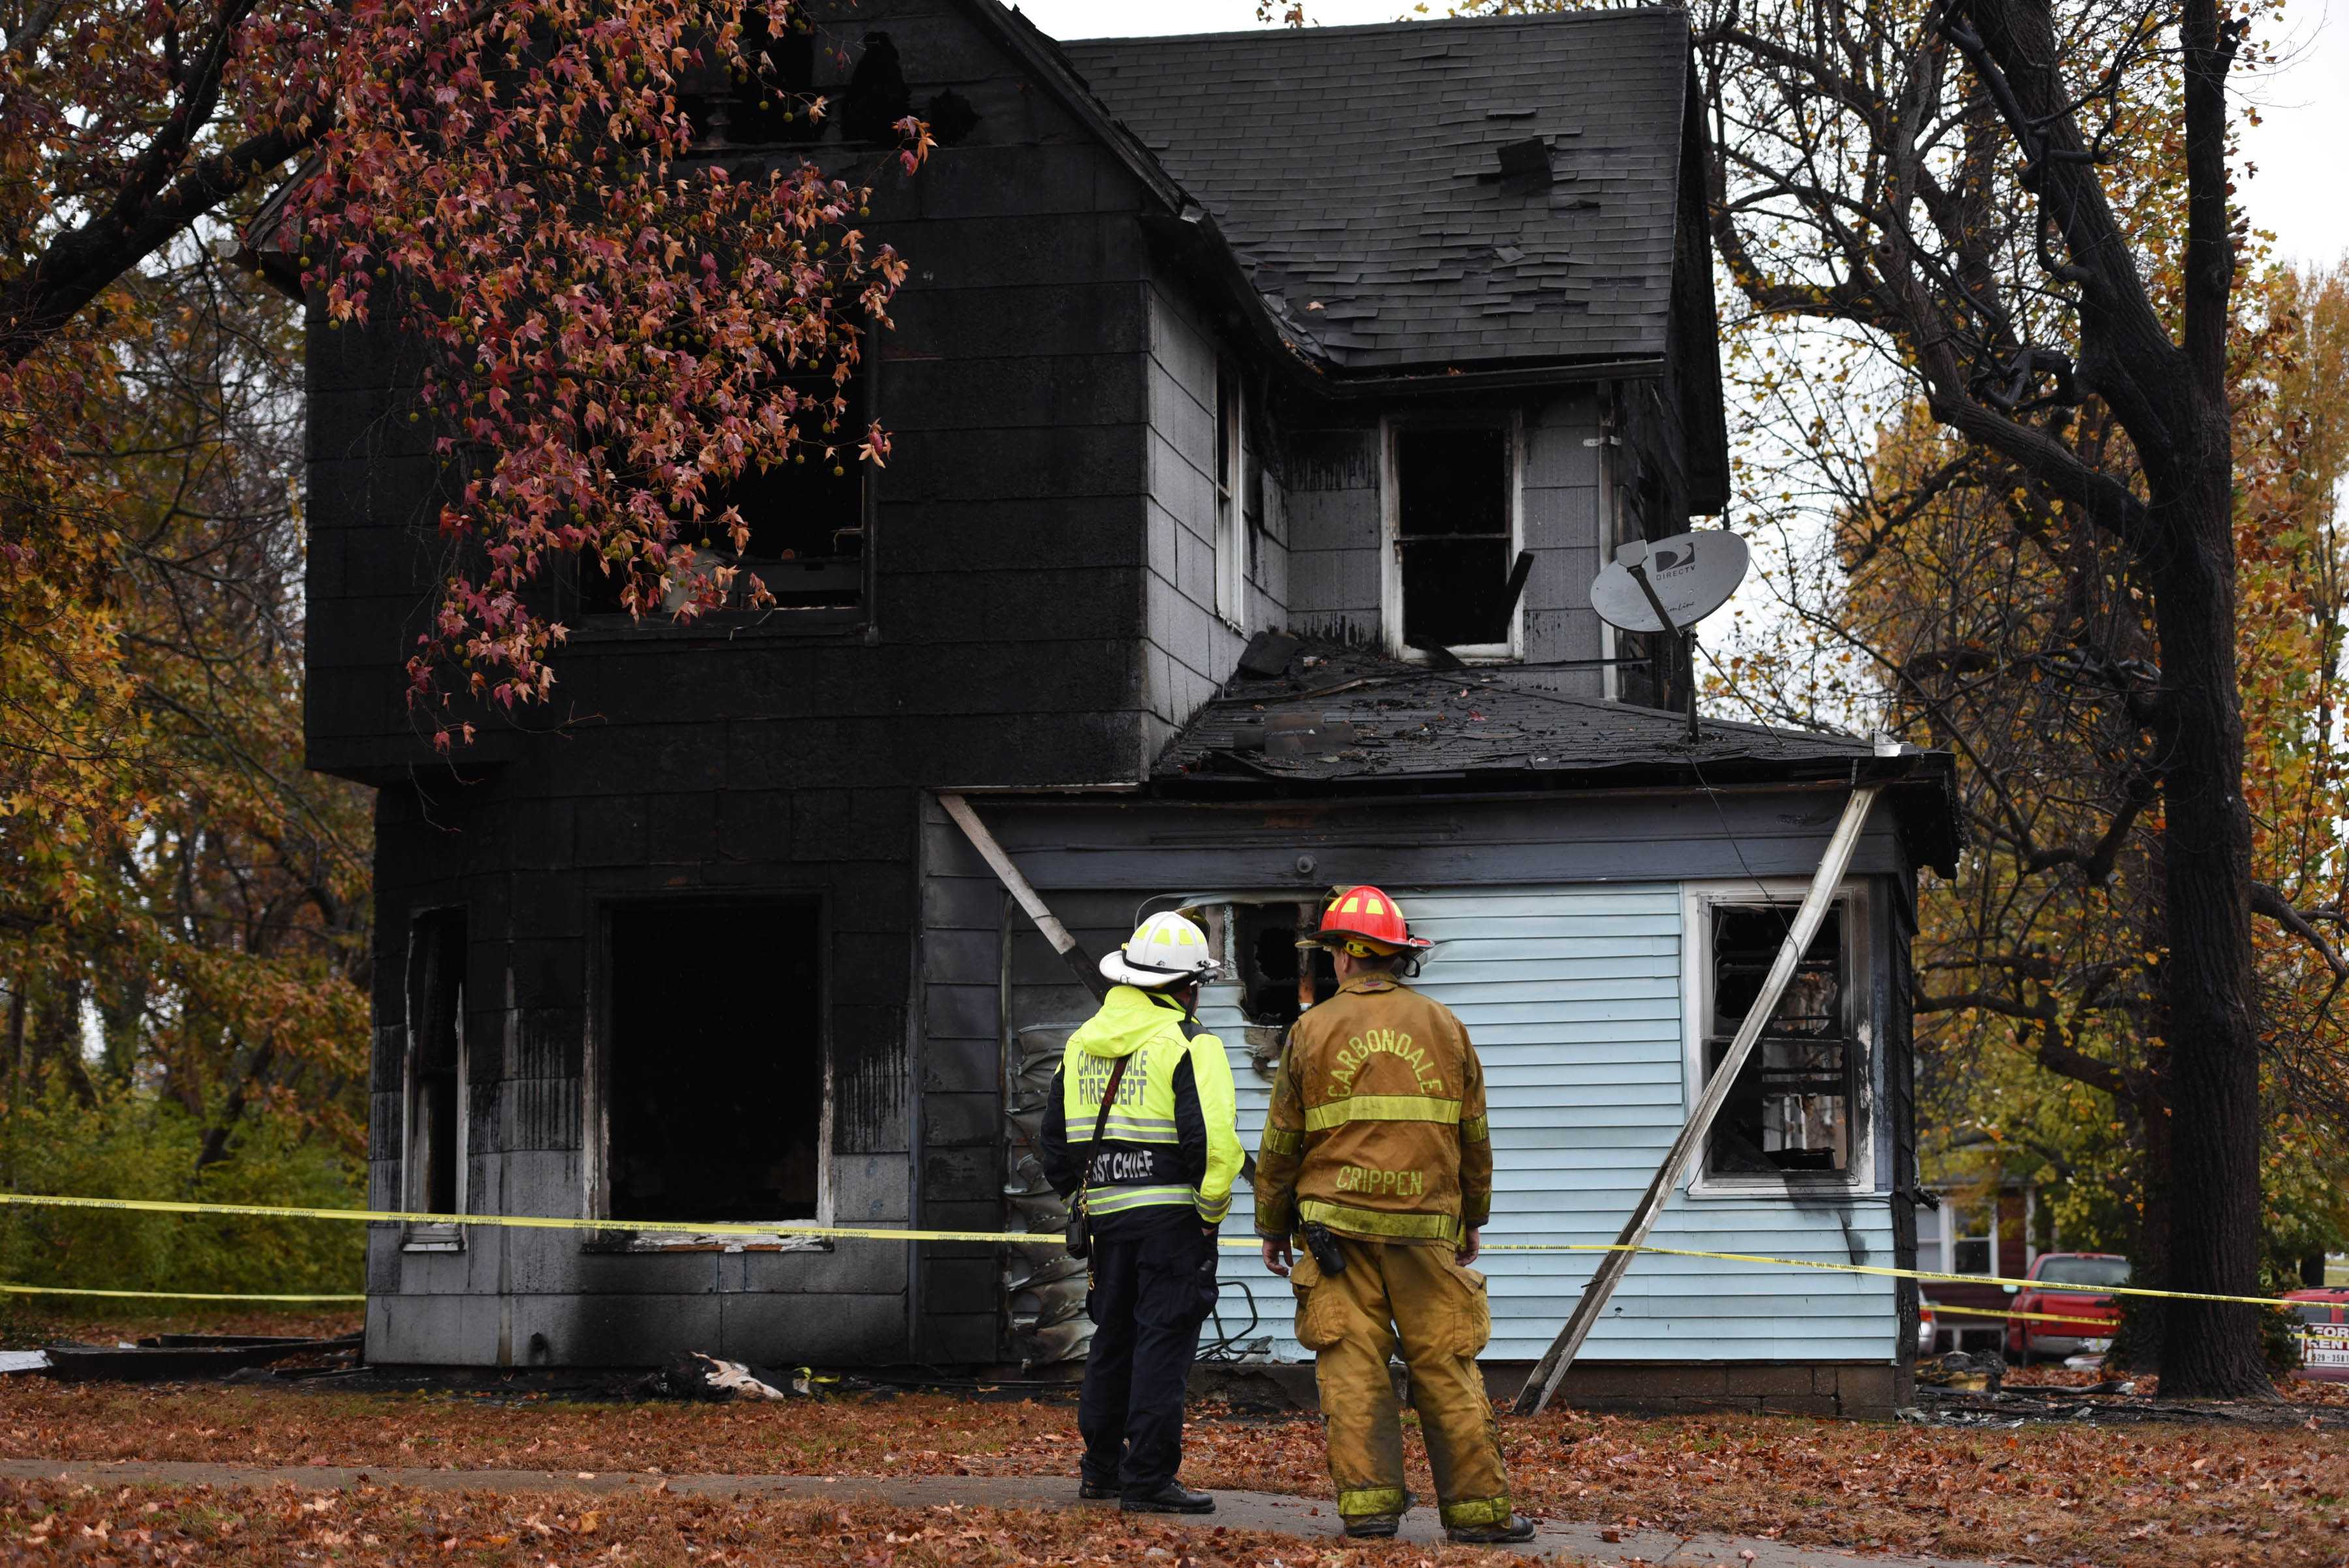 Carbondale firefighters continued to investigate a fatal structure fire that killed one person Wednesday, Nov. 23, 2016, in the 700 block of West Freeman Street. (Bill Lukitsch | @lukitsbill)